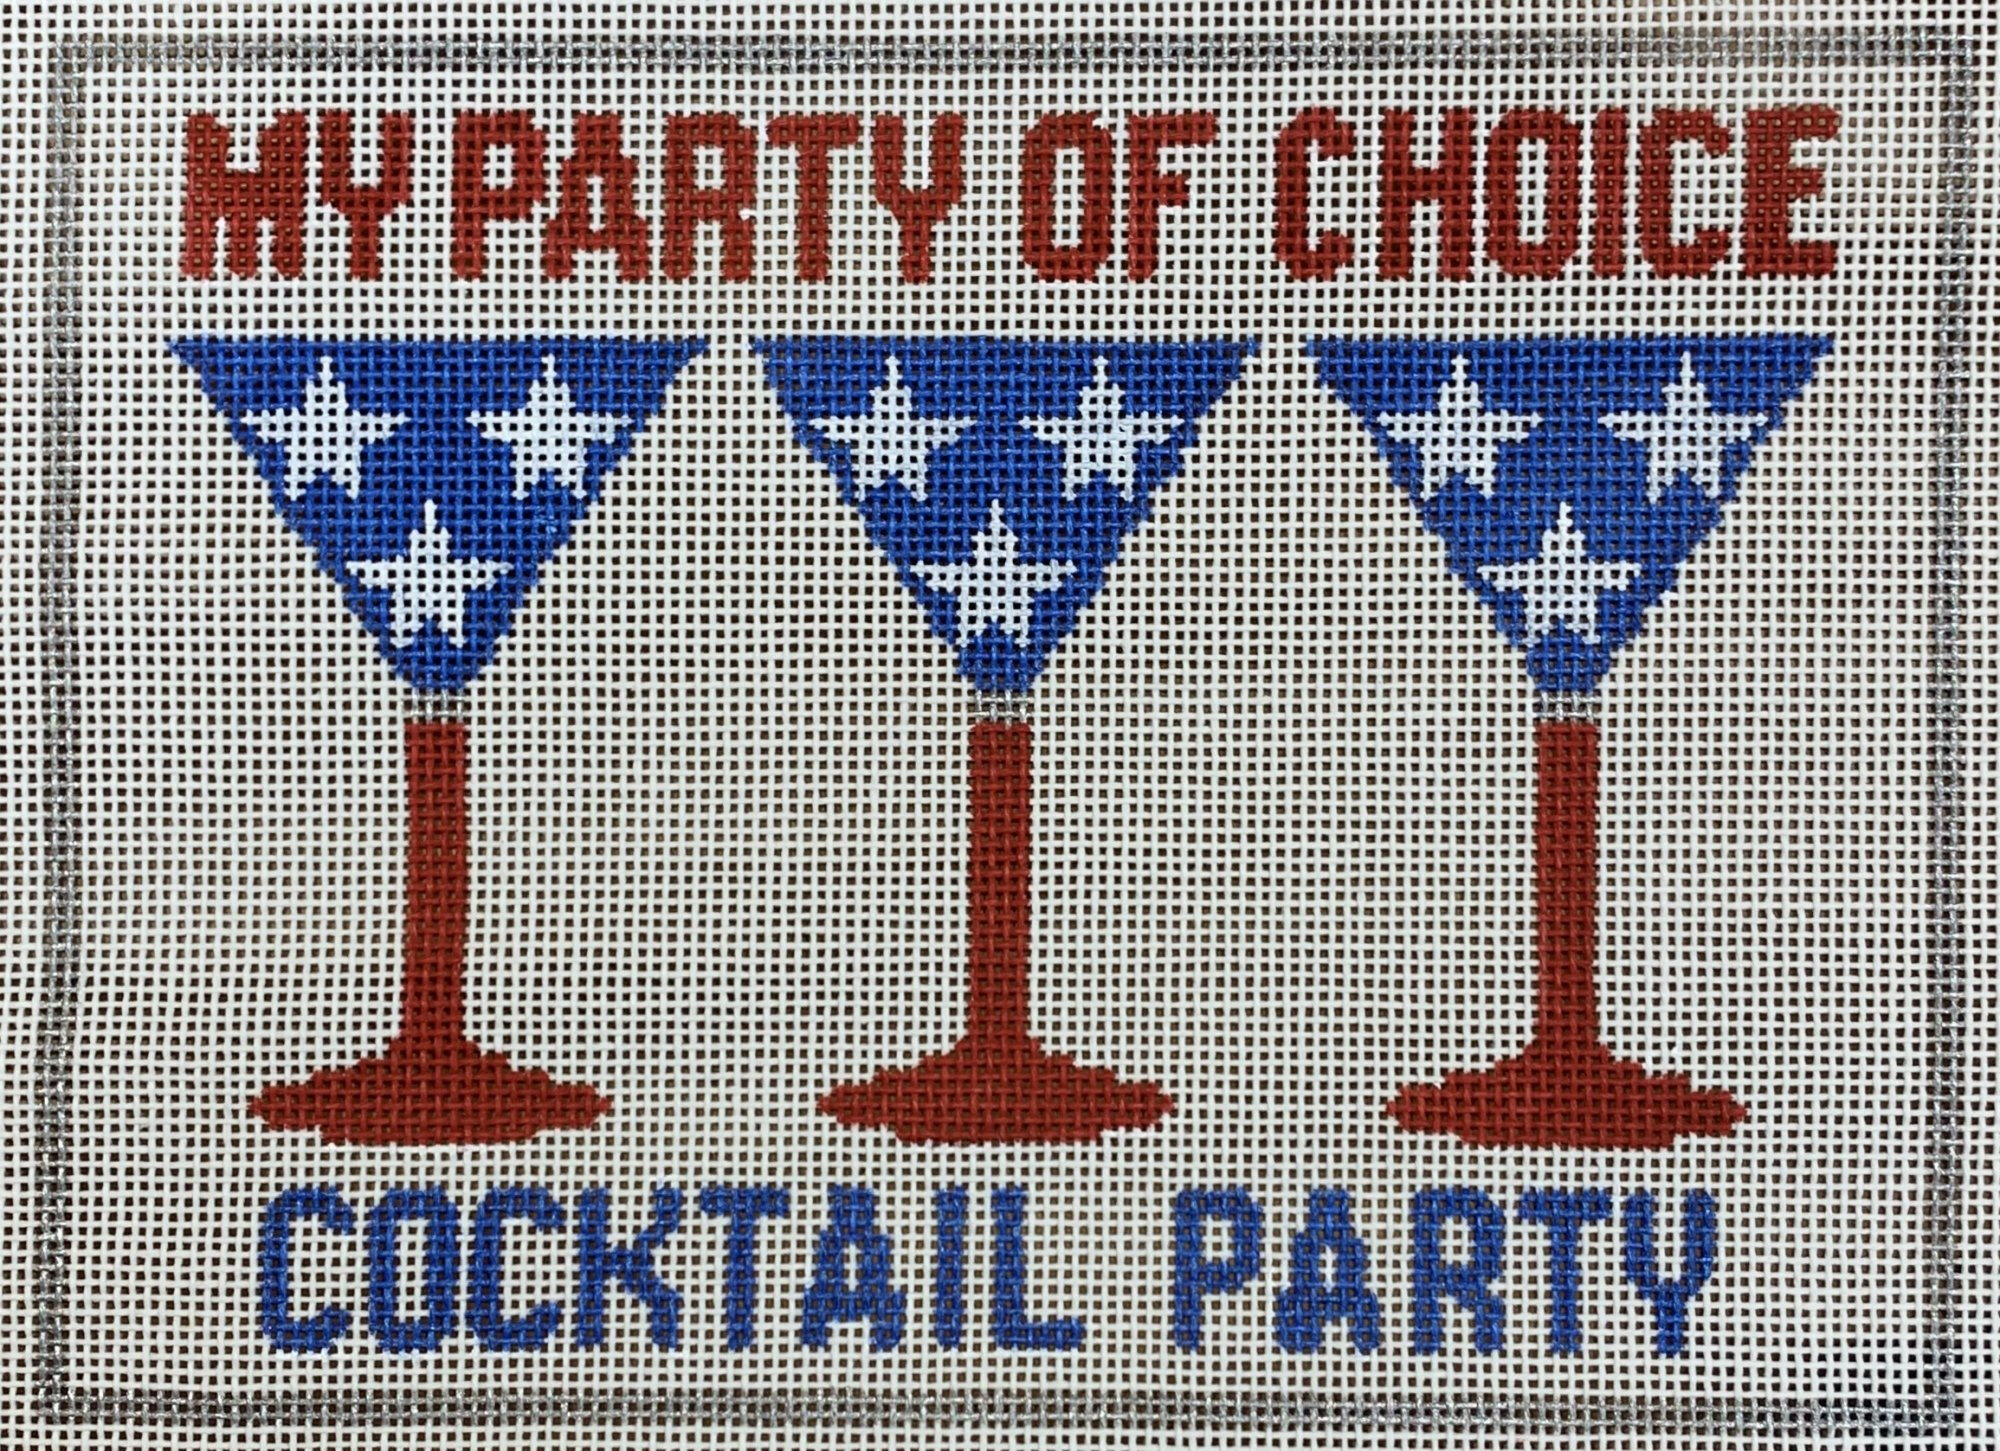 My Party of Choice